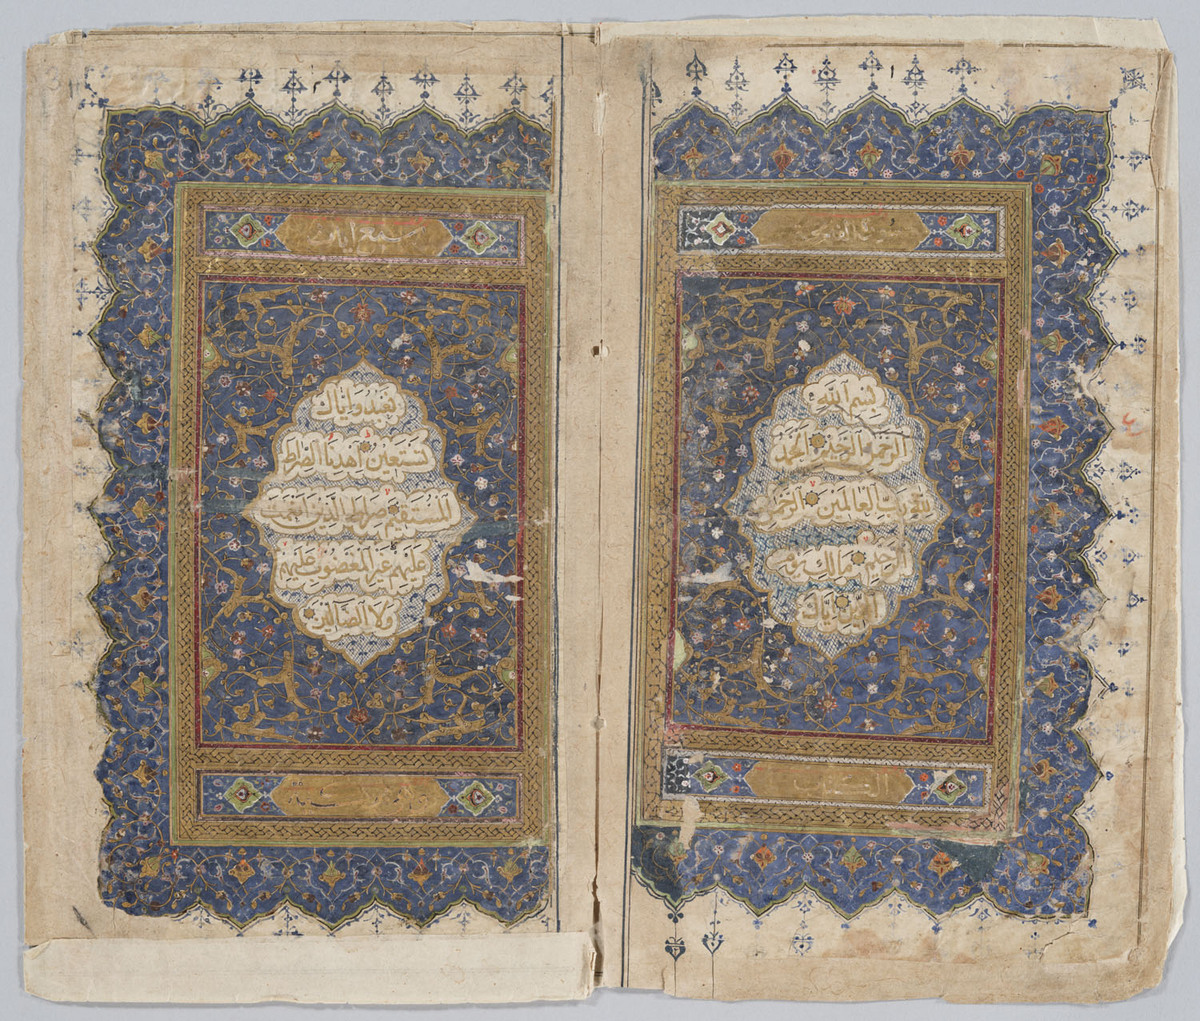 Quran, sura 1 opening pages, sura 2 opening pages